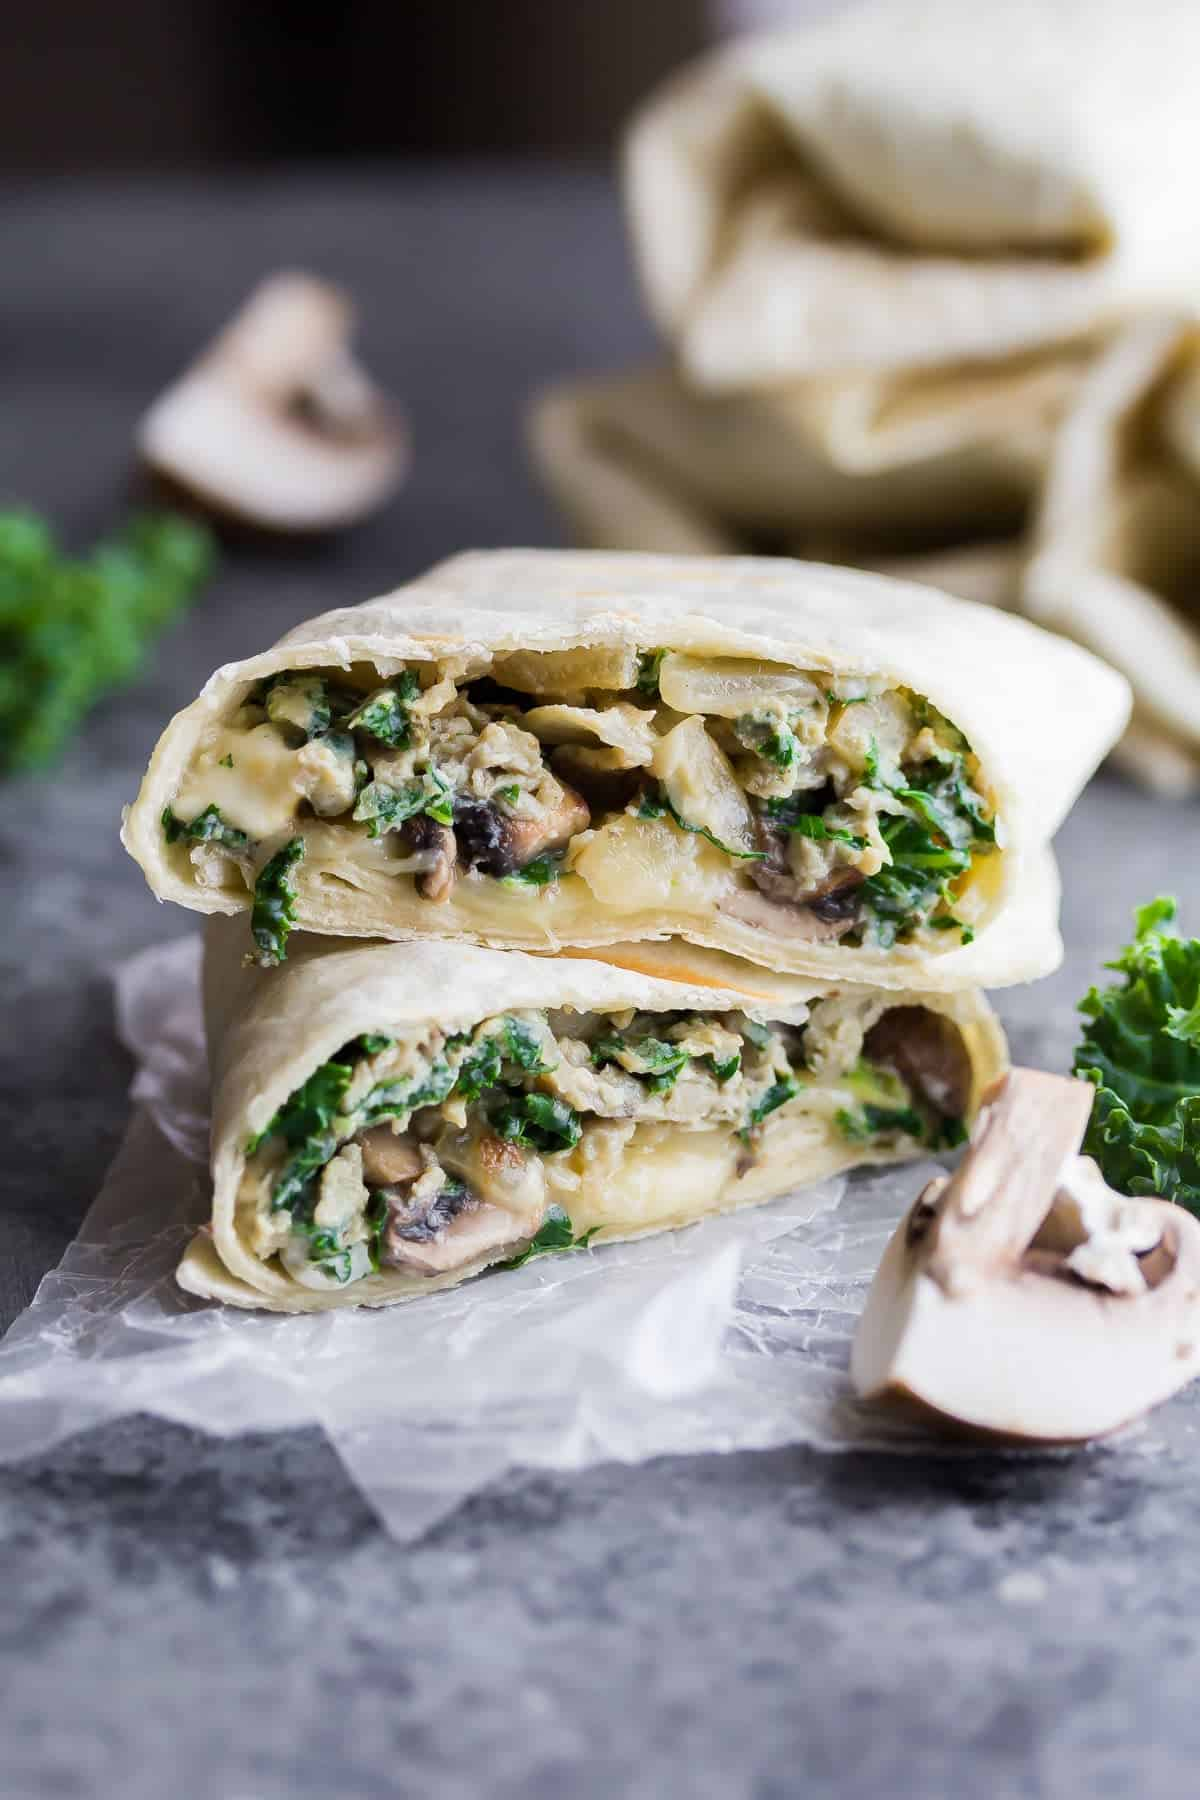 These freezer-friendly healthy breakfast burritos are packed with kale, mushrooms and feta. An easy grab and go breakfast that will actually keep you full!